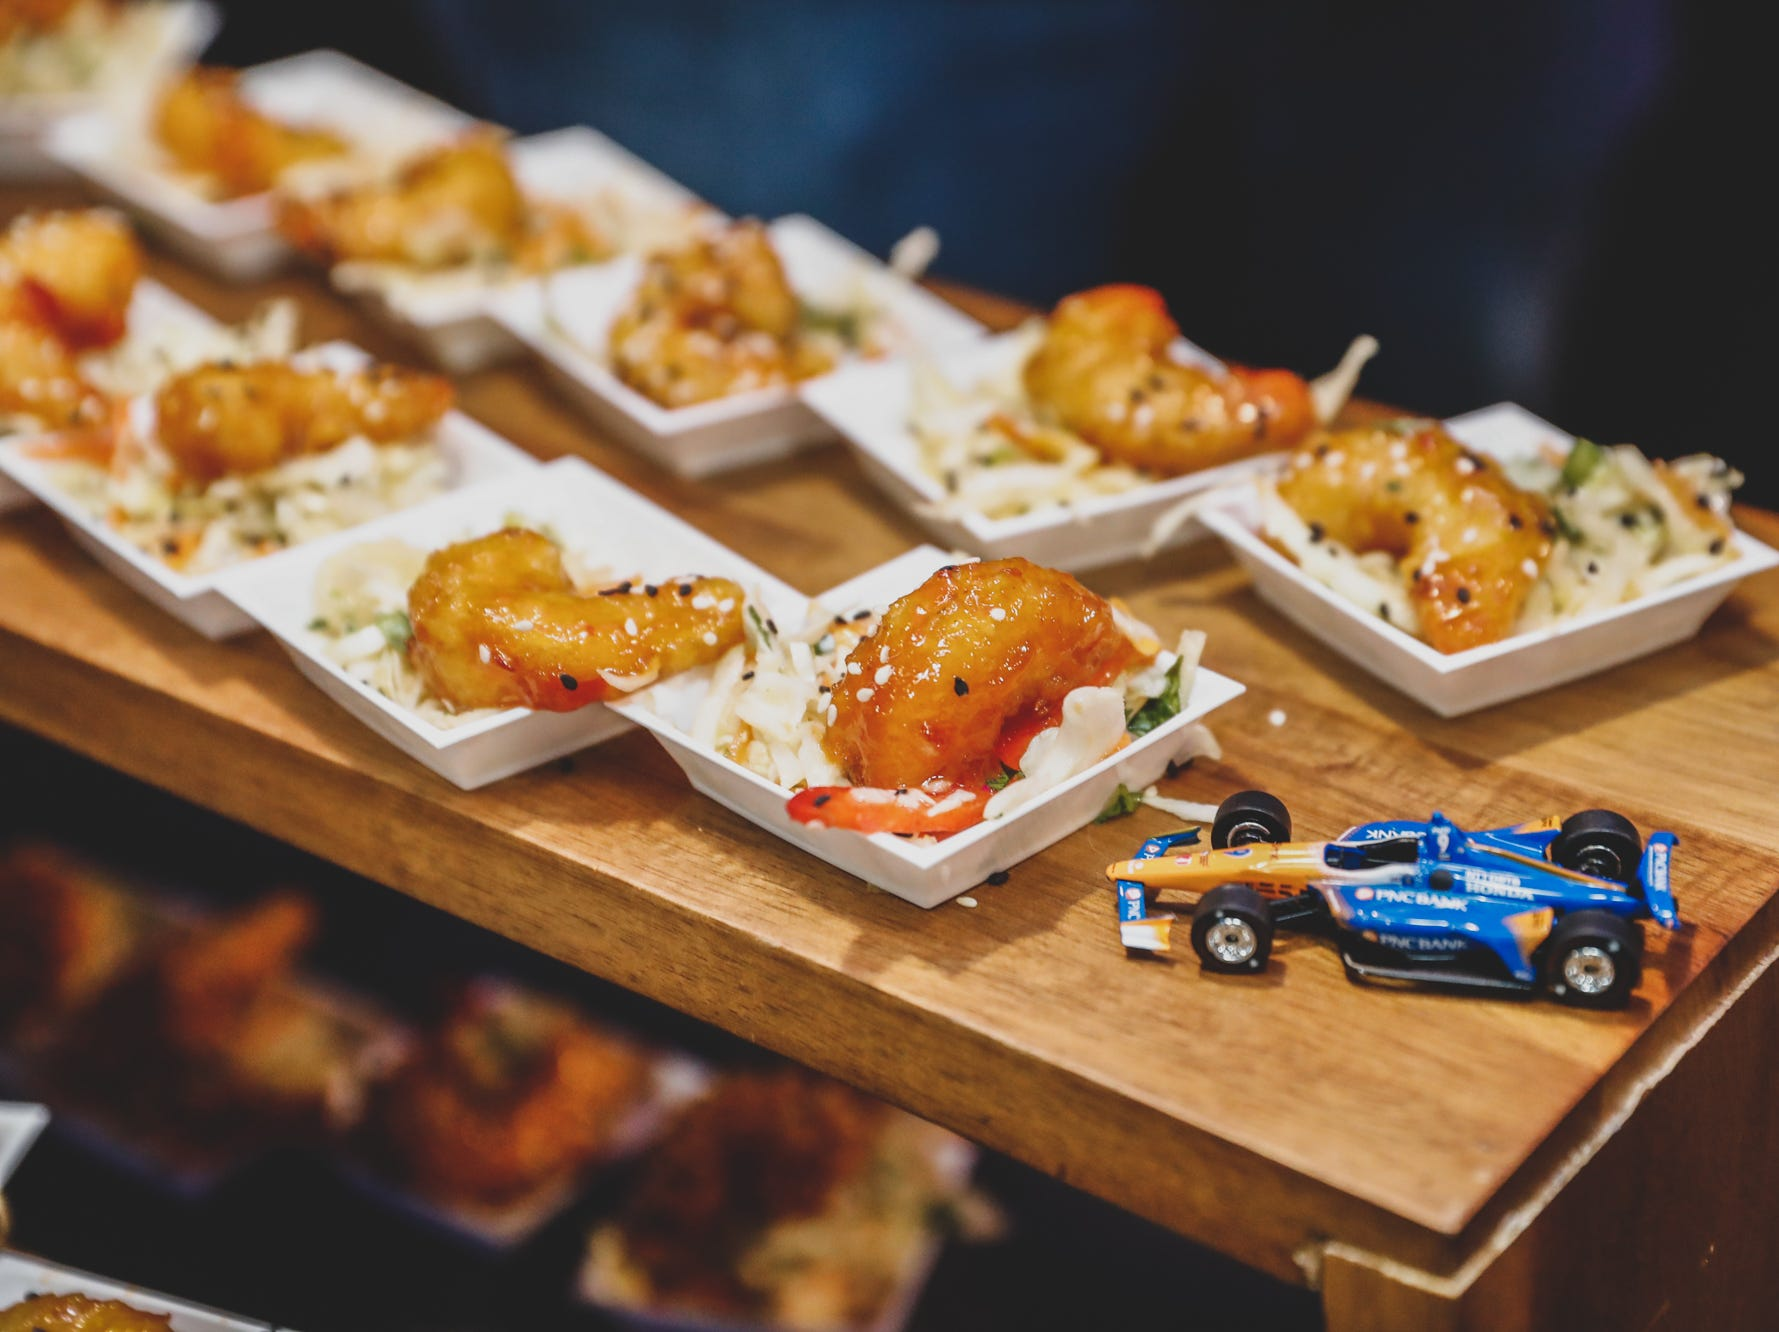 Local chefs and drivers serve up tasty treats  for the Rev Indy fundraiser held at the Indianapolis Motor Speedway on Saturday, May 4, 2019. Funds raised support the IU Health Foundation statewide and the IU Health Emergency Medical Center at IMS.